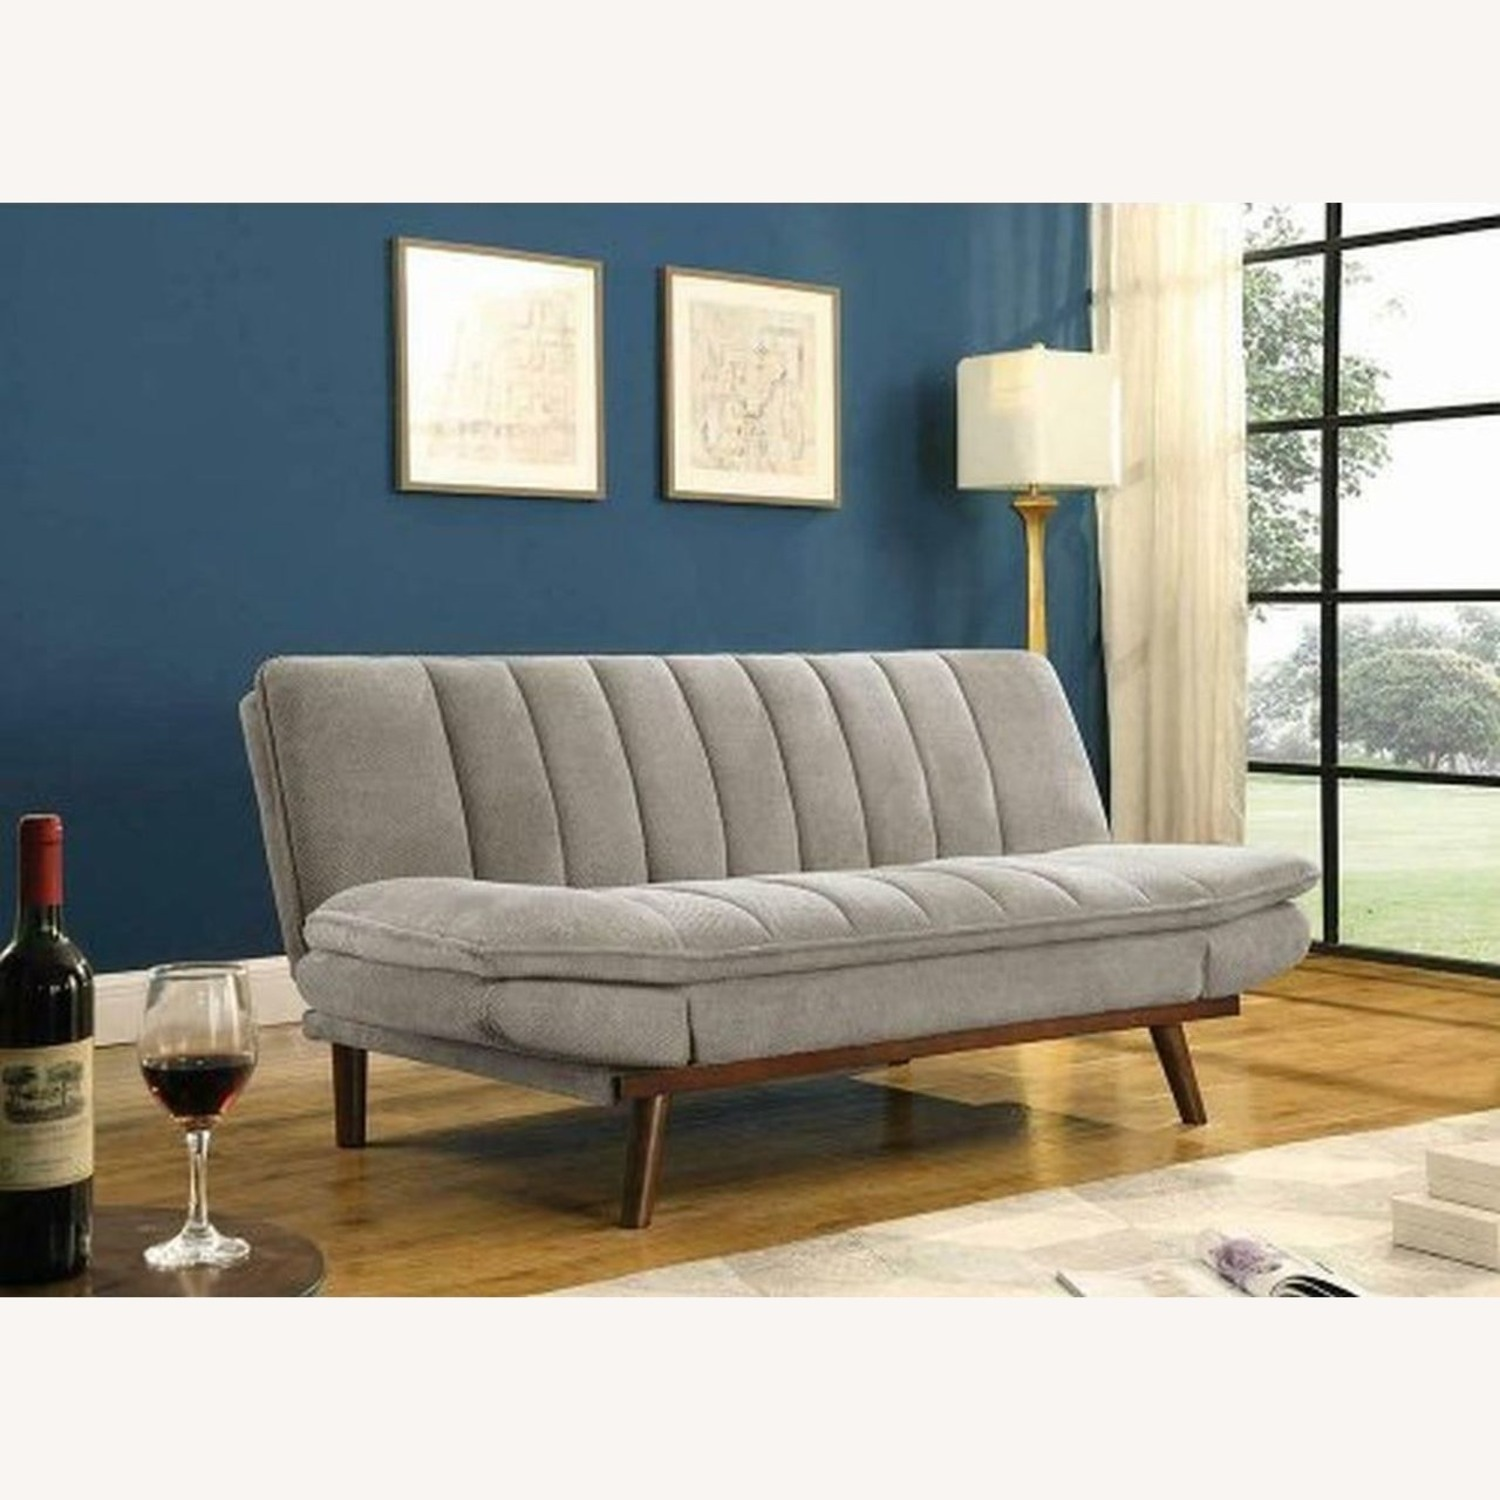 Mid Century Sofa Bed In Beige Fabric - image-2